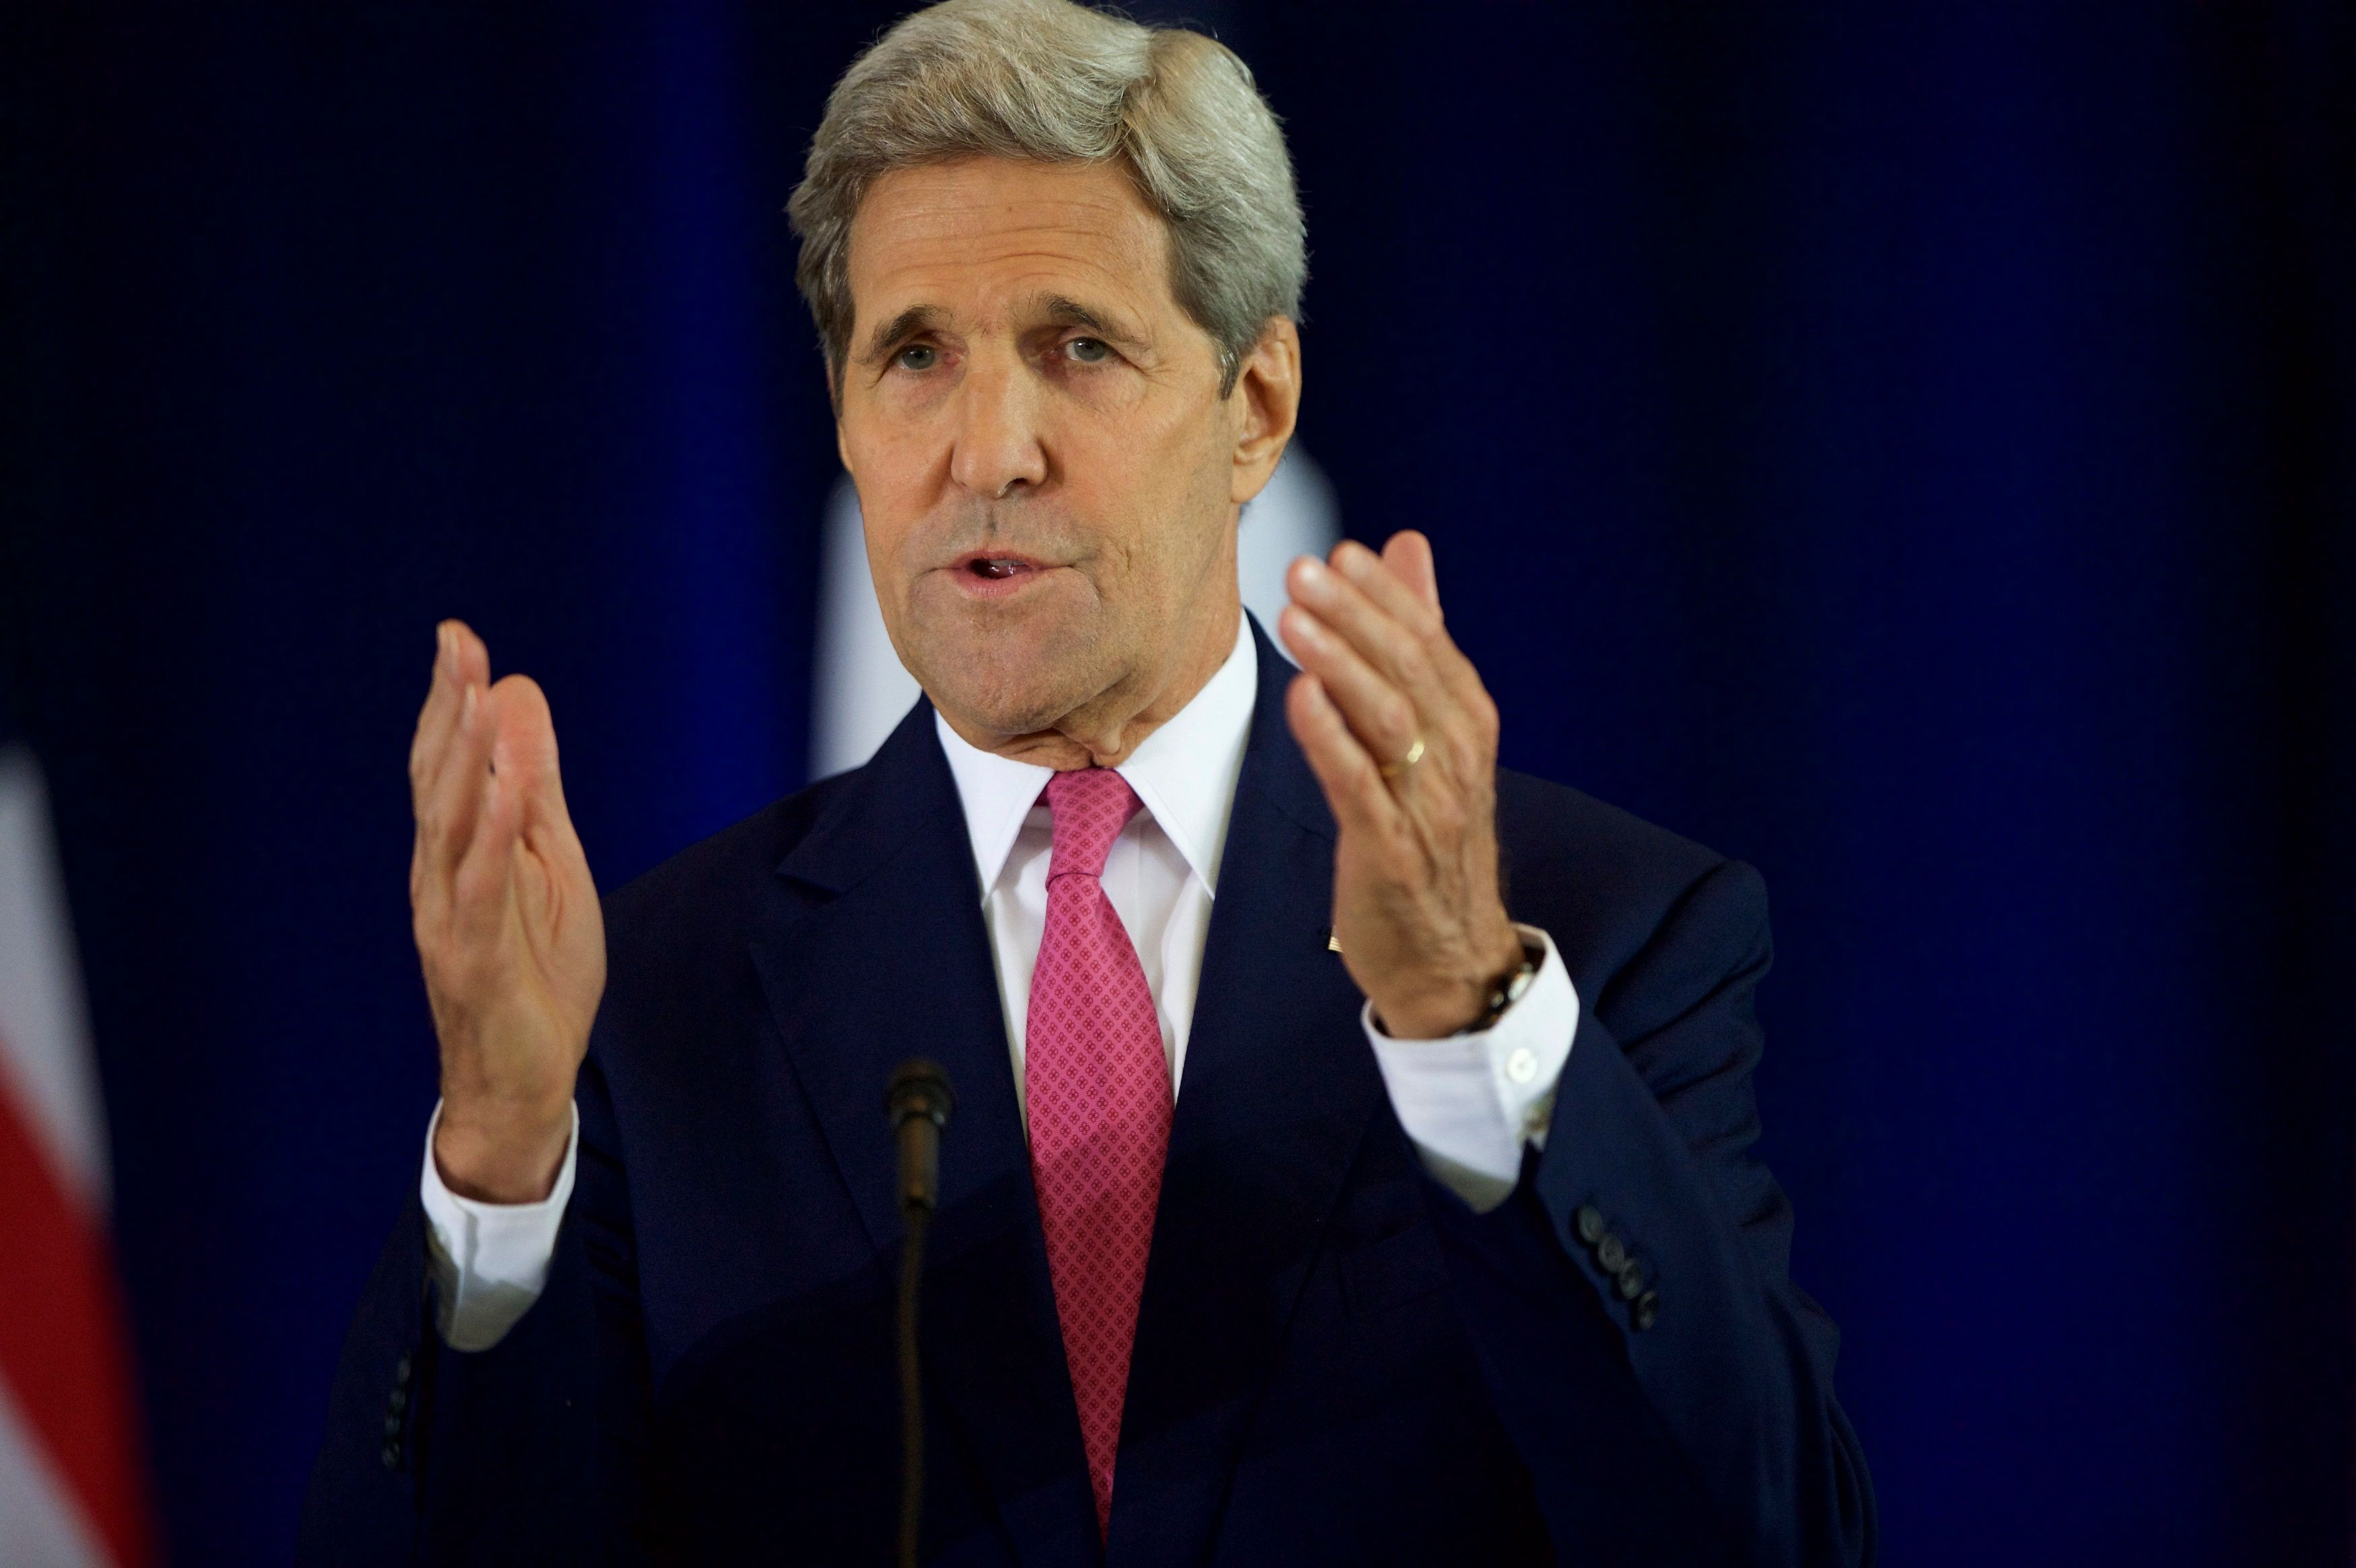 PHILADELPHIA, PA - SEPTEMBER 2:  U.S. Secretary of State John Kerry delivers a speech on the nuclear agreement with Iran at the National Constitution Center on September 2, 2015 in Philadelphia, Pennsylvania. U.S. Sen. Barbara Mikulski (D-MD) announced her support for the Iran nuclear deal, becoming the 34th Democratic senator to back the president and garnering enough votes for the deal to survive in congress.  (Photo by Mark Makela/Getty Images)